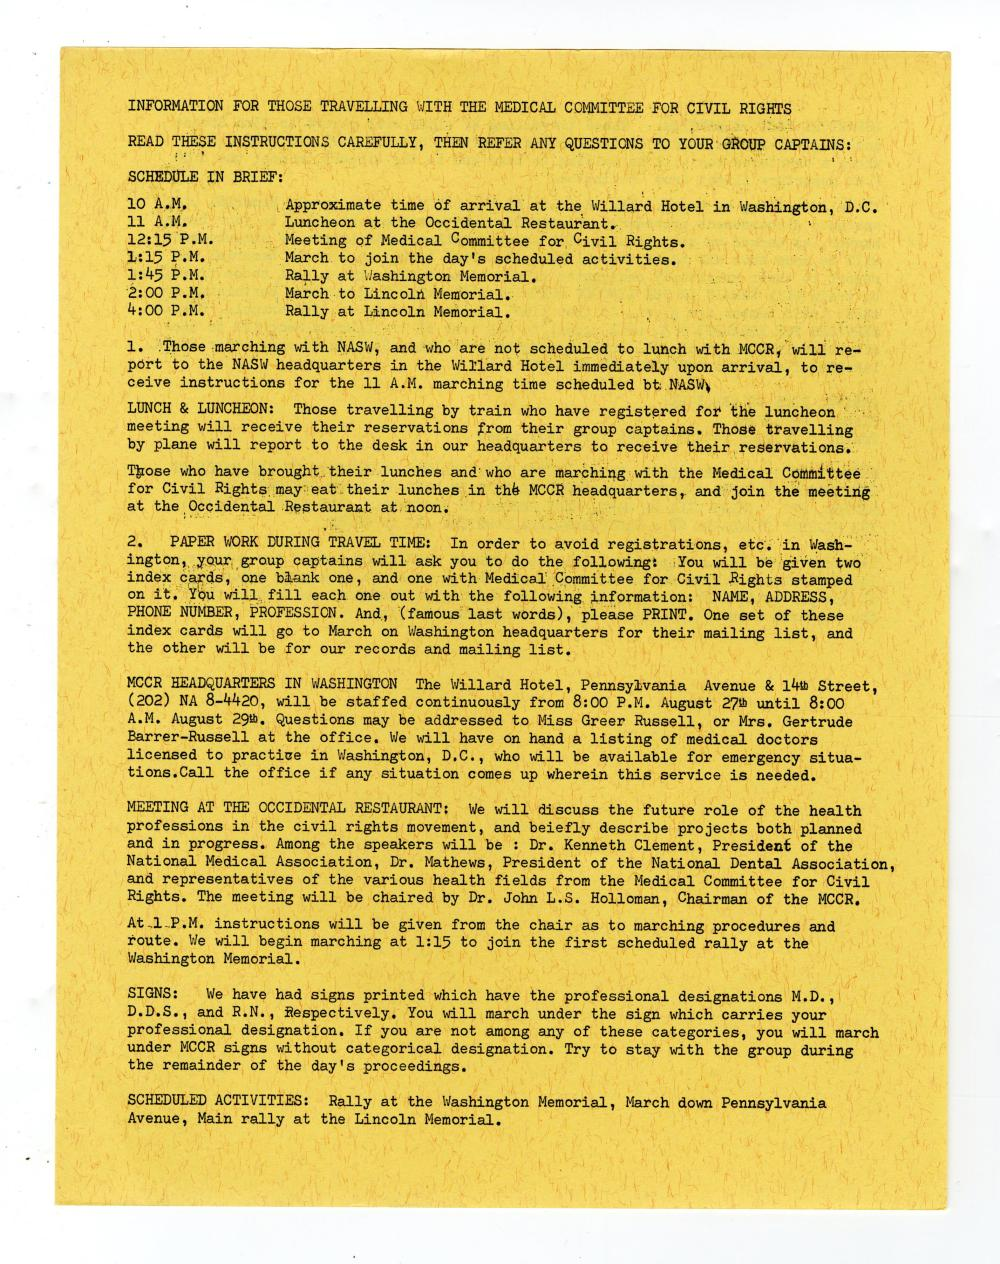 """March on Washington """"Medical Committee for Civil Rights"""" Information Sheets 7pp"""